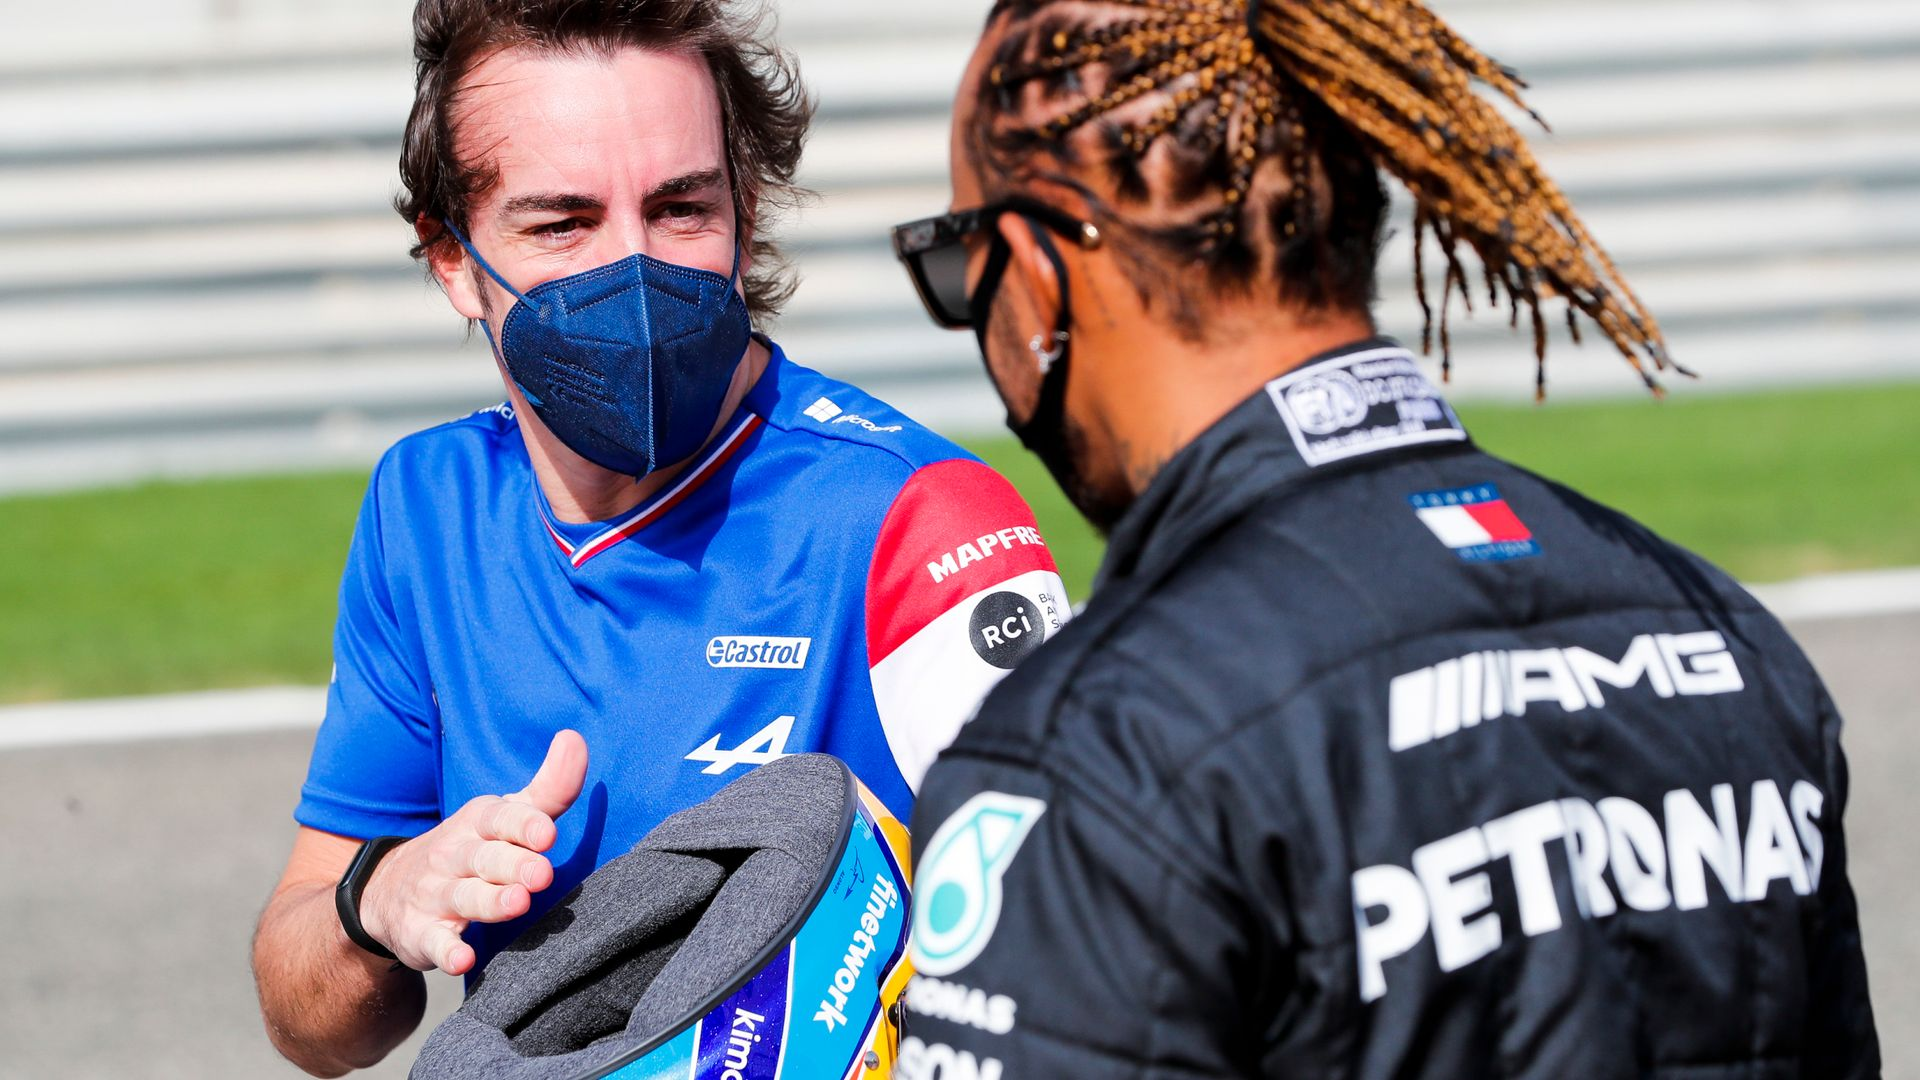 F1 Testing: Hamilton, Alonso in action on Day Two LIVE!